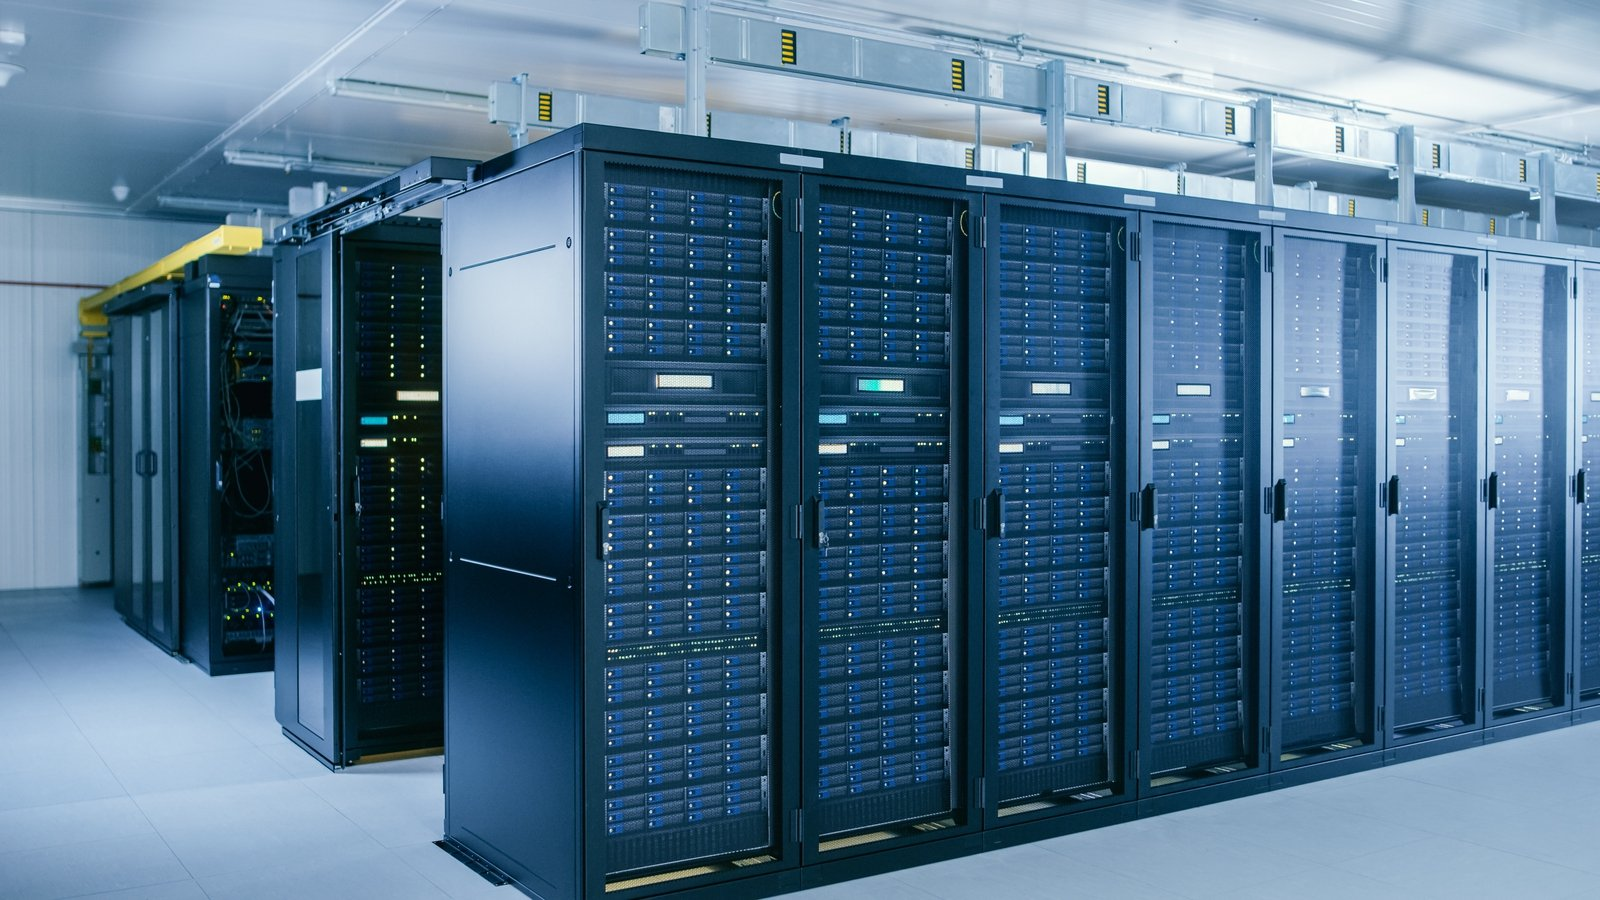 Data centres could use 70% of grid by 2030 - expert